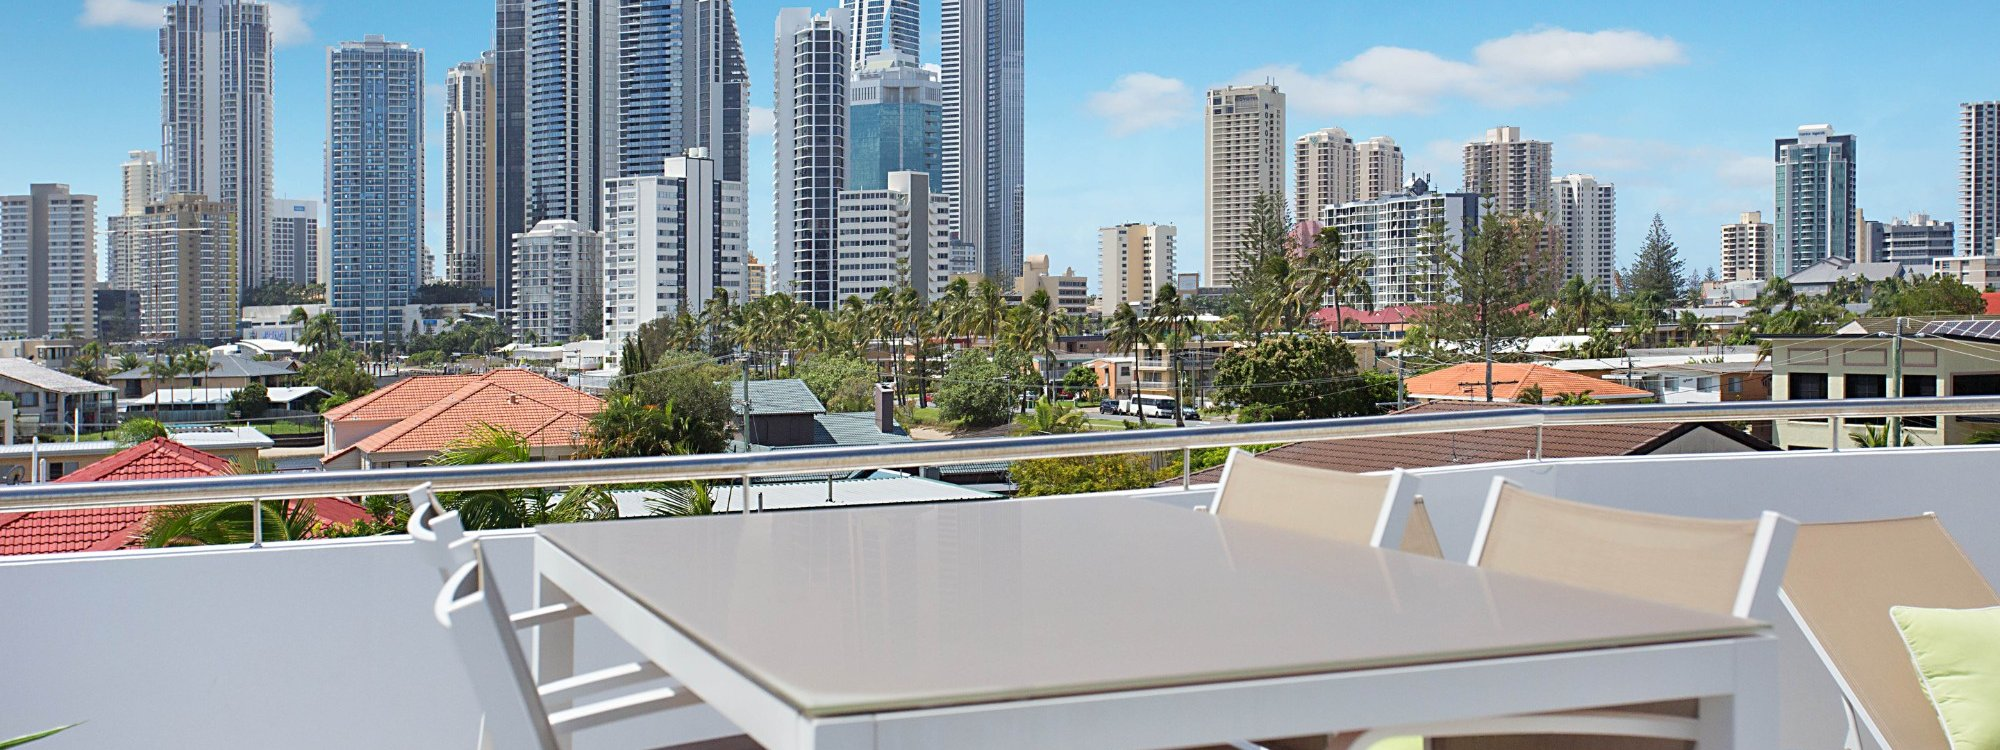 Casa Grande on the Water - Surfers Paradise - Rooftop Terrace Views and sitting area